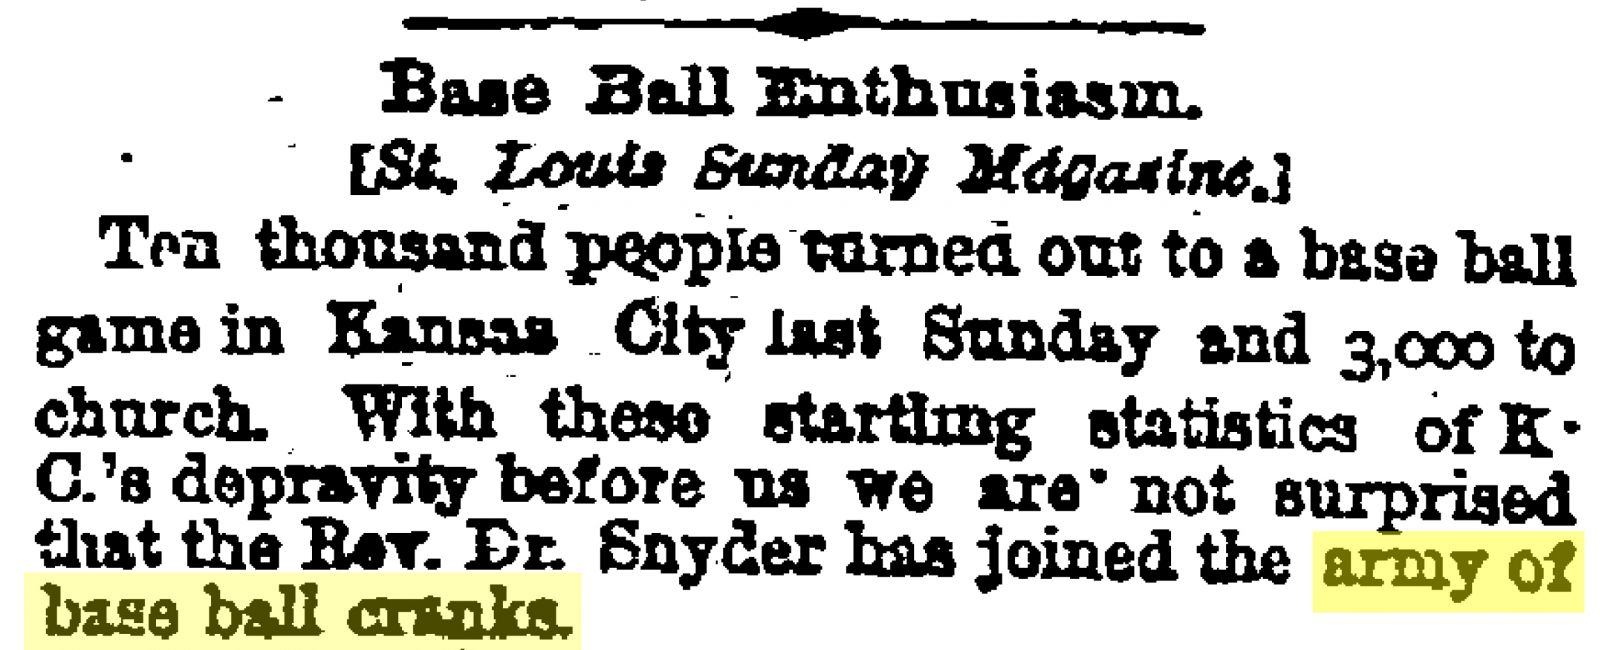 Image from St. Louis Sunday Magazine article, published in the April 21, 1885, Kansas City Times with the headline Base Ball Enthusiam